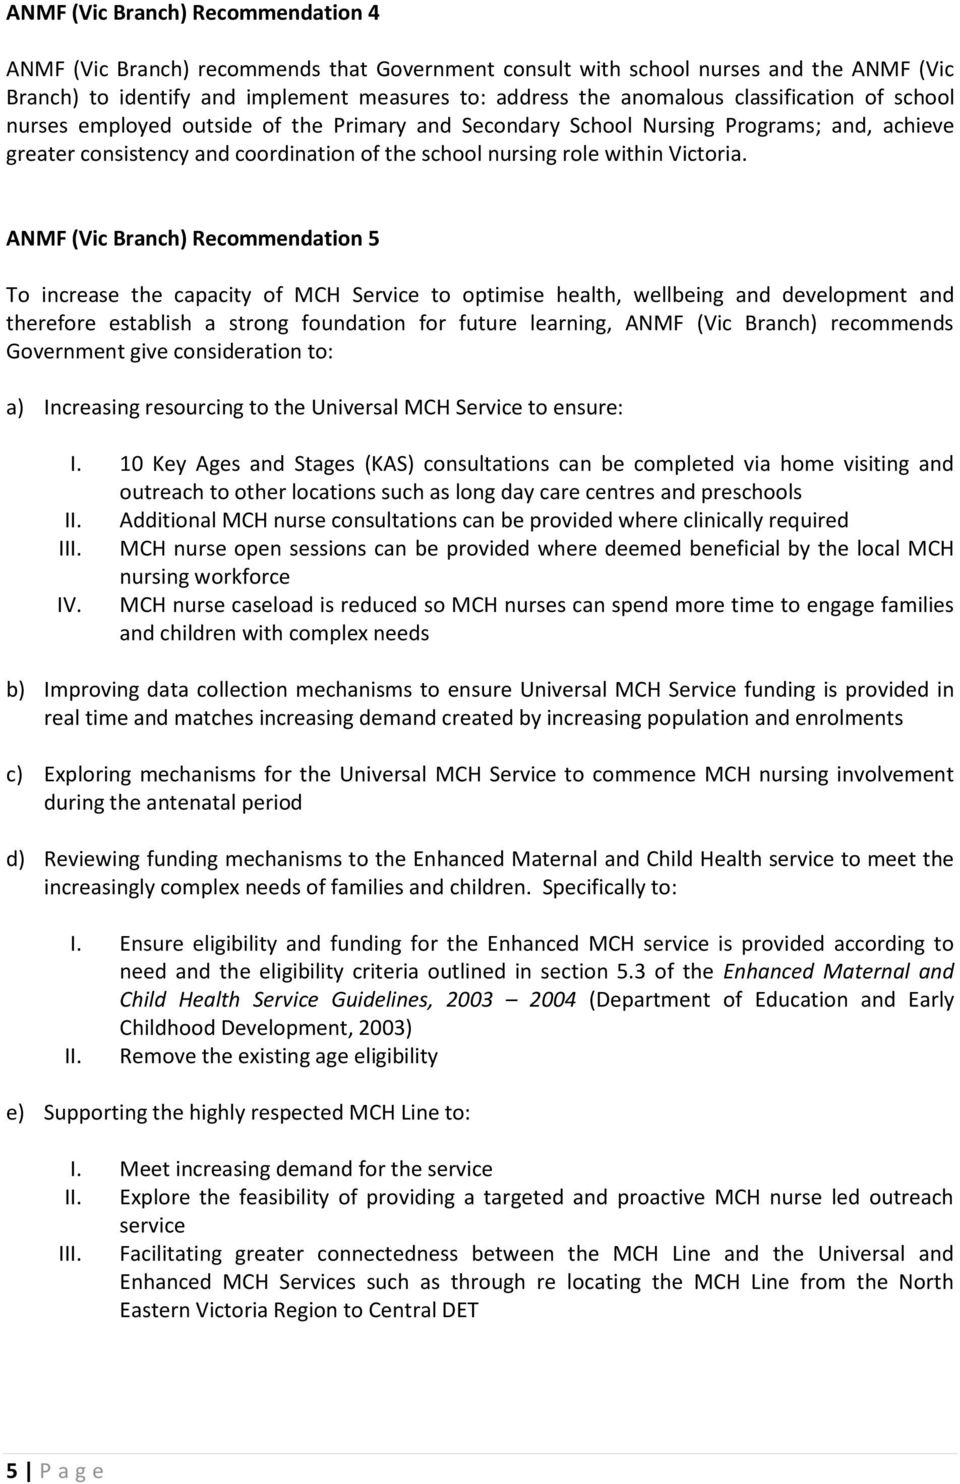 ANMF (Vic Branch) Recommendation 5 To increase the capacity of MCH Service to optimise health, wellbeing and development and therefore establish a strong foundation for future learning, ANMF (Vic